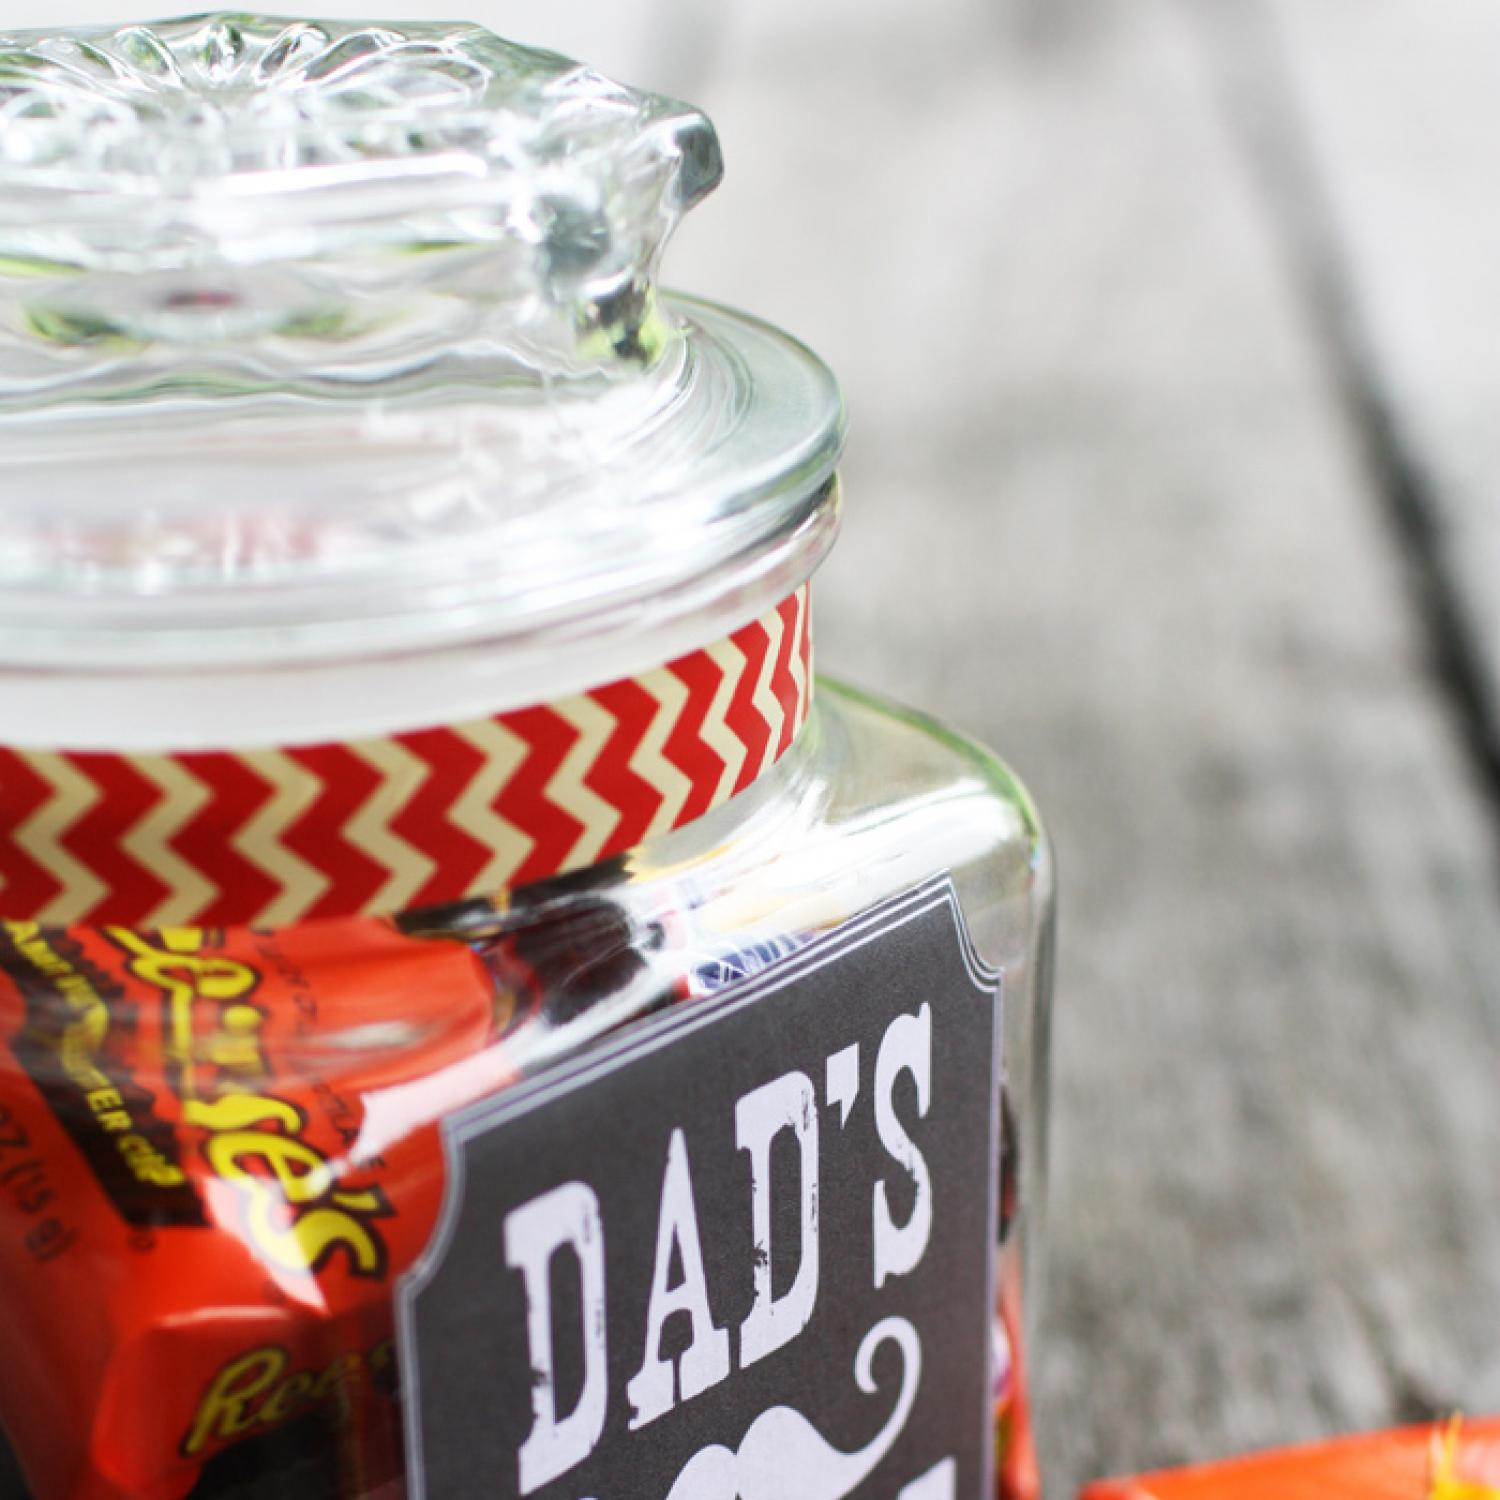 Diy Fathers Day Gifts ~ Best Of Home Design Ideas